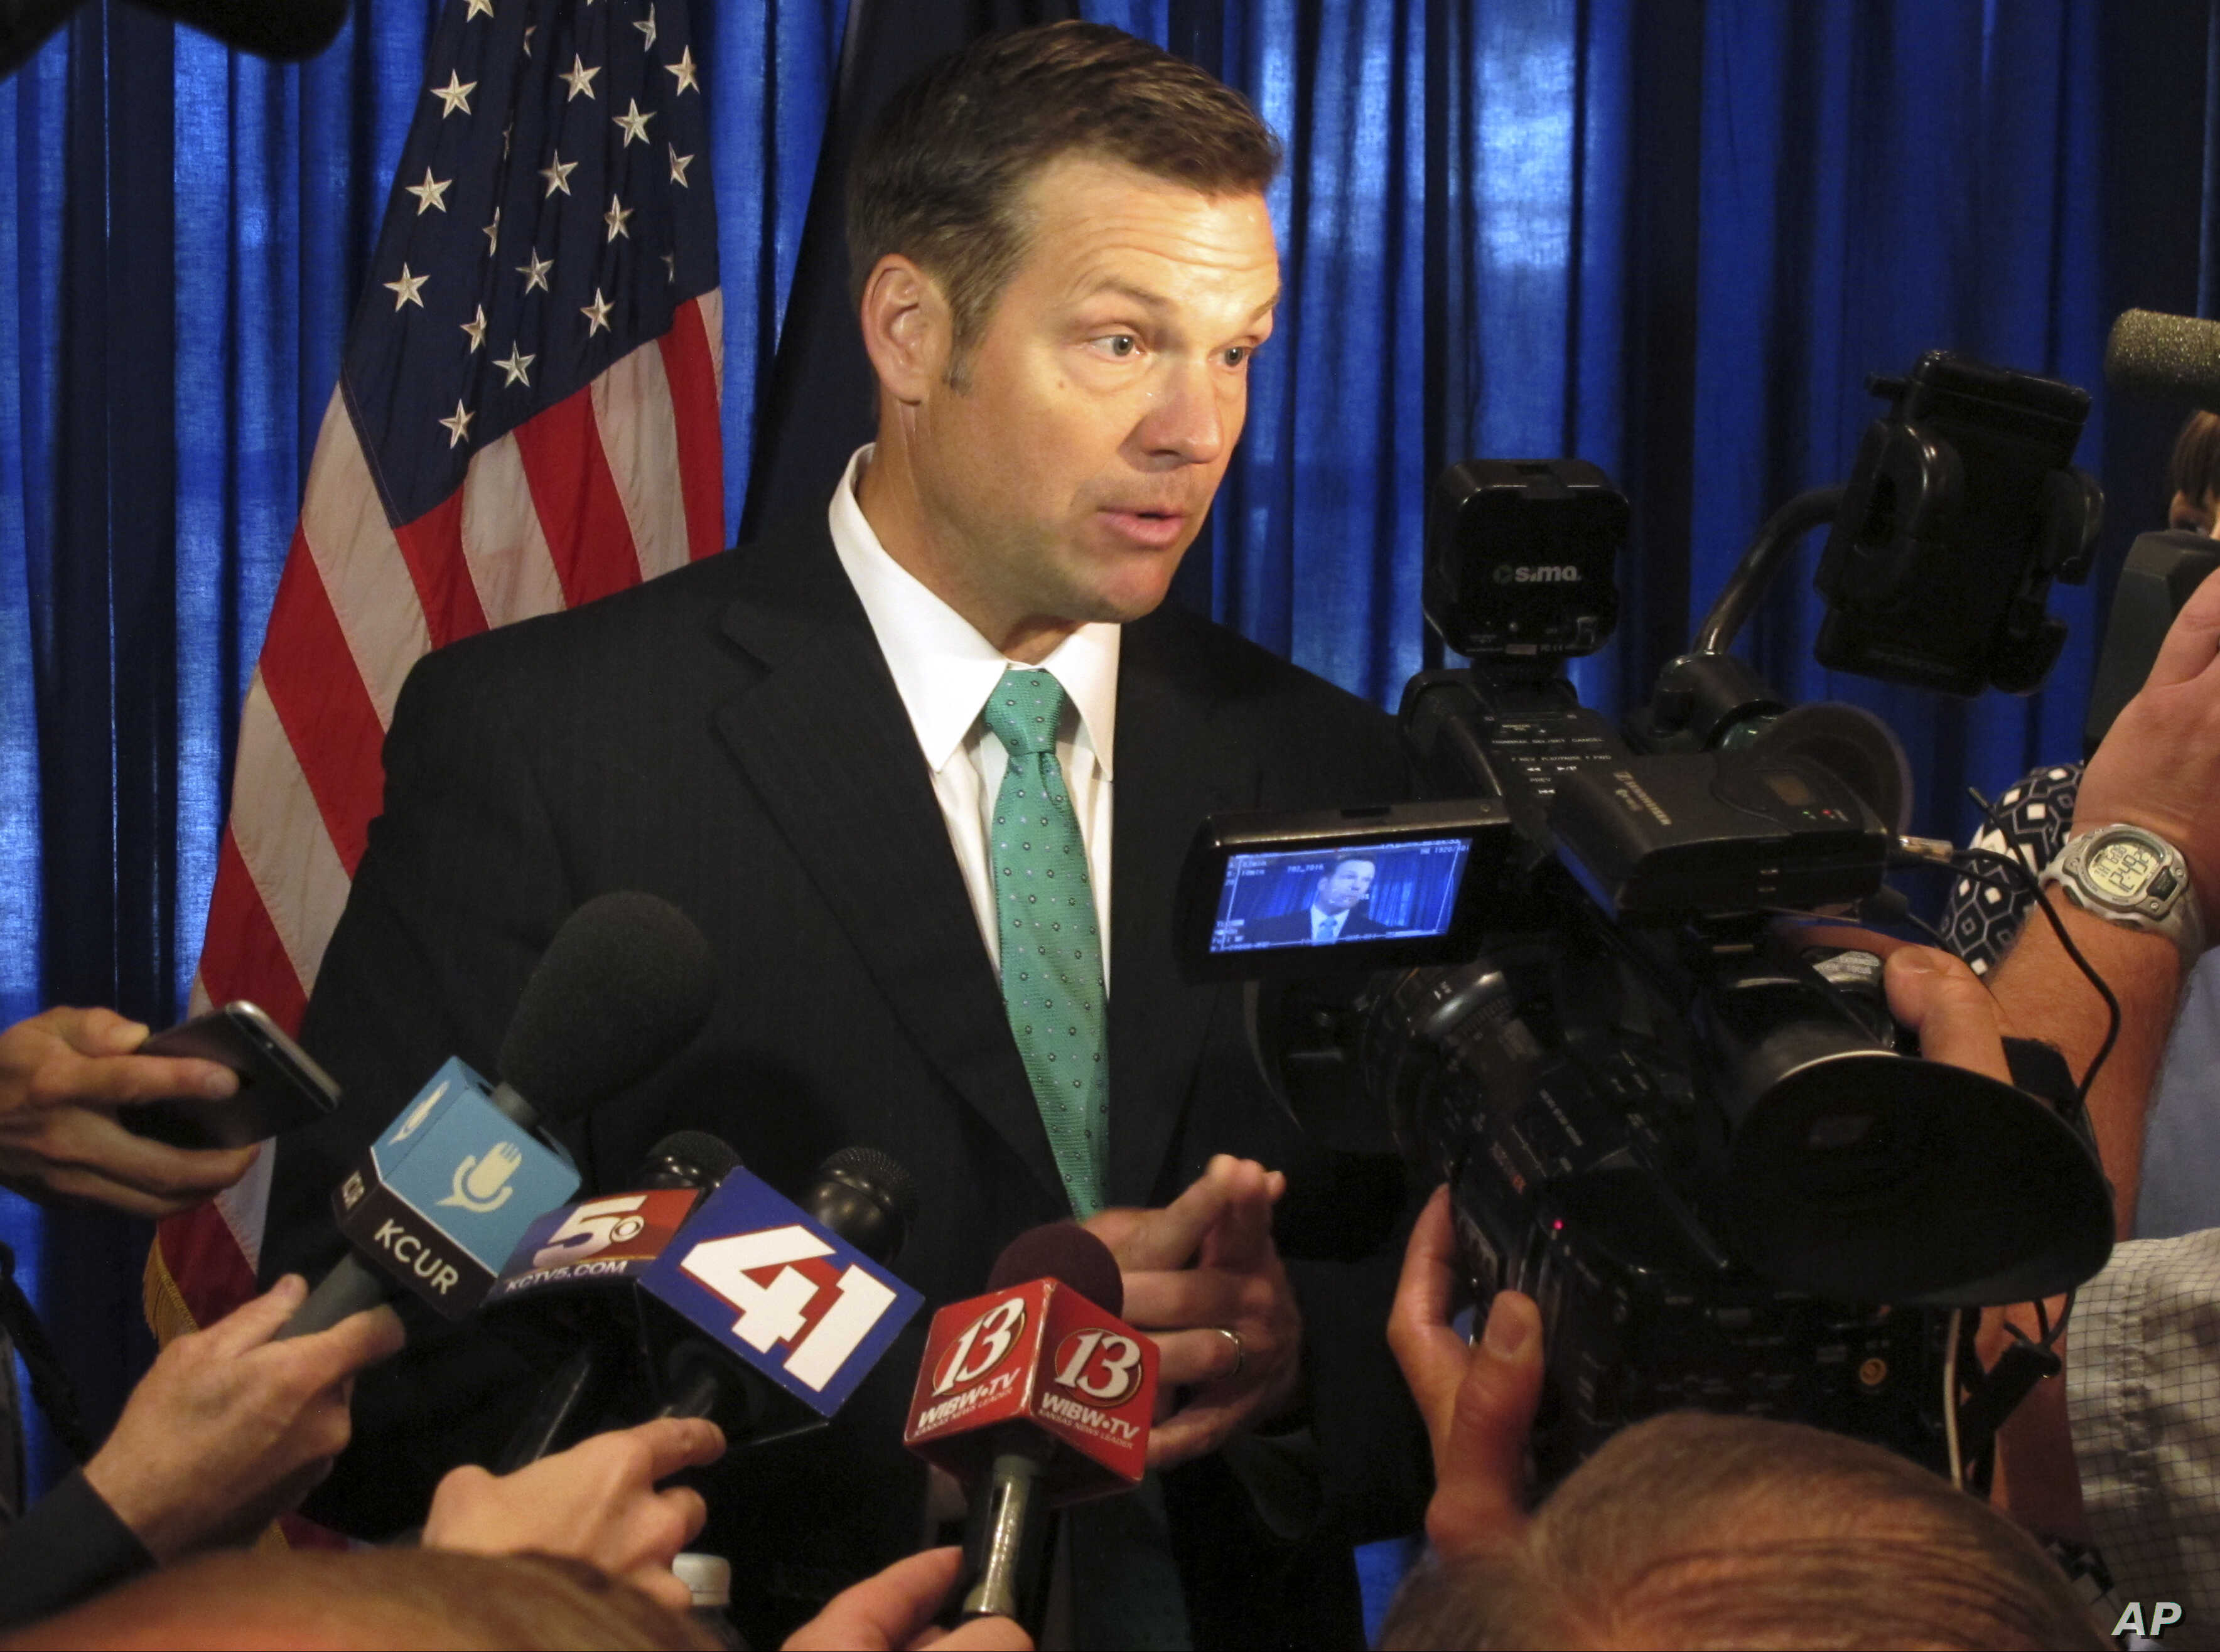 Kansas Secretary of State Kris Kobach speaks to supporters in launching his campaign for the Republican nomination for governor, June 8, 2017, at an events center in Lenexa, Kansas.